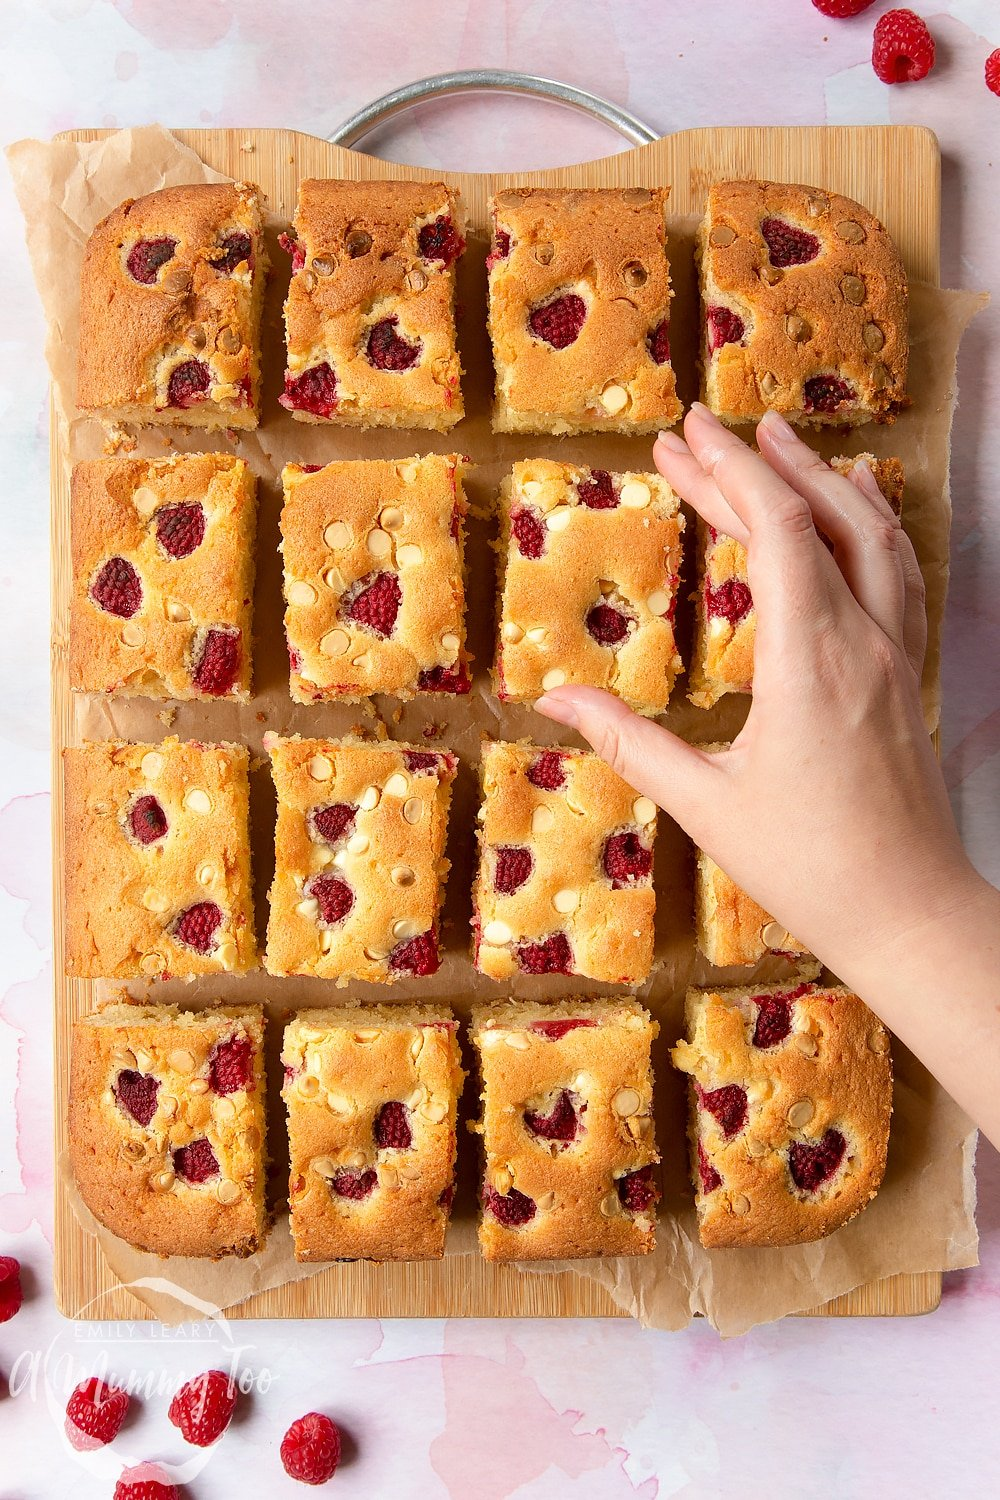 A raspberry and white chocolate traybake cut into servings.